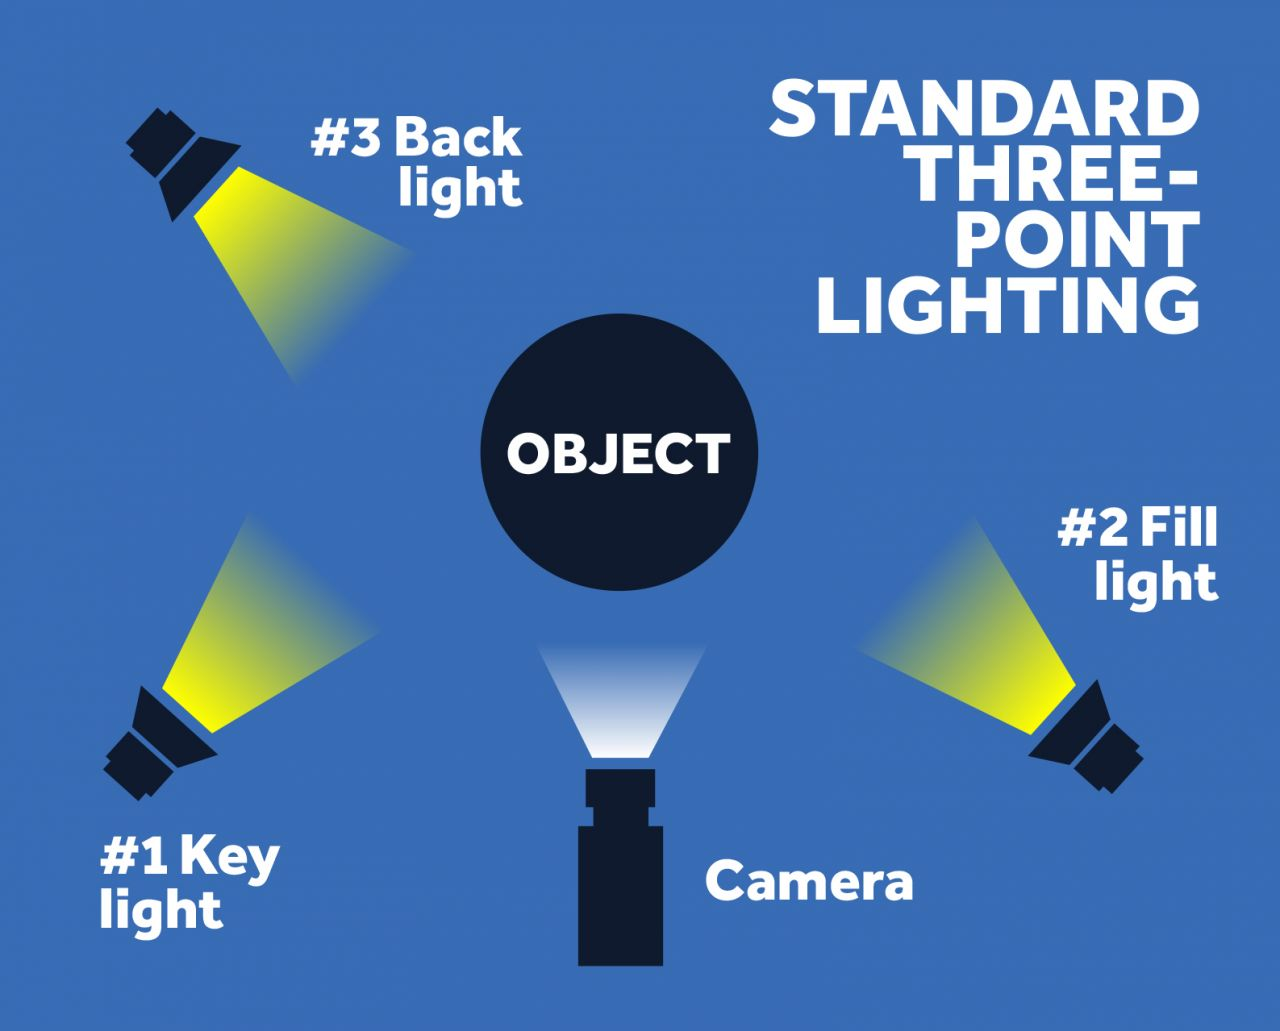 If youu0027re just getting started with lighting or have a limited budget you can get by with a two-point setup that uses just the key and fill lights.  sc 1 st  Biteable & The Best Video Lighting Kits to Make Your Videos Look Pro | Biteable